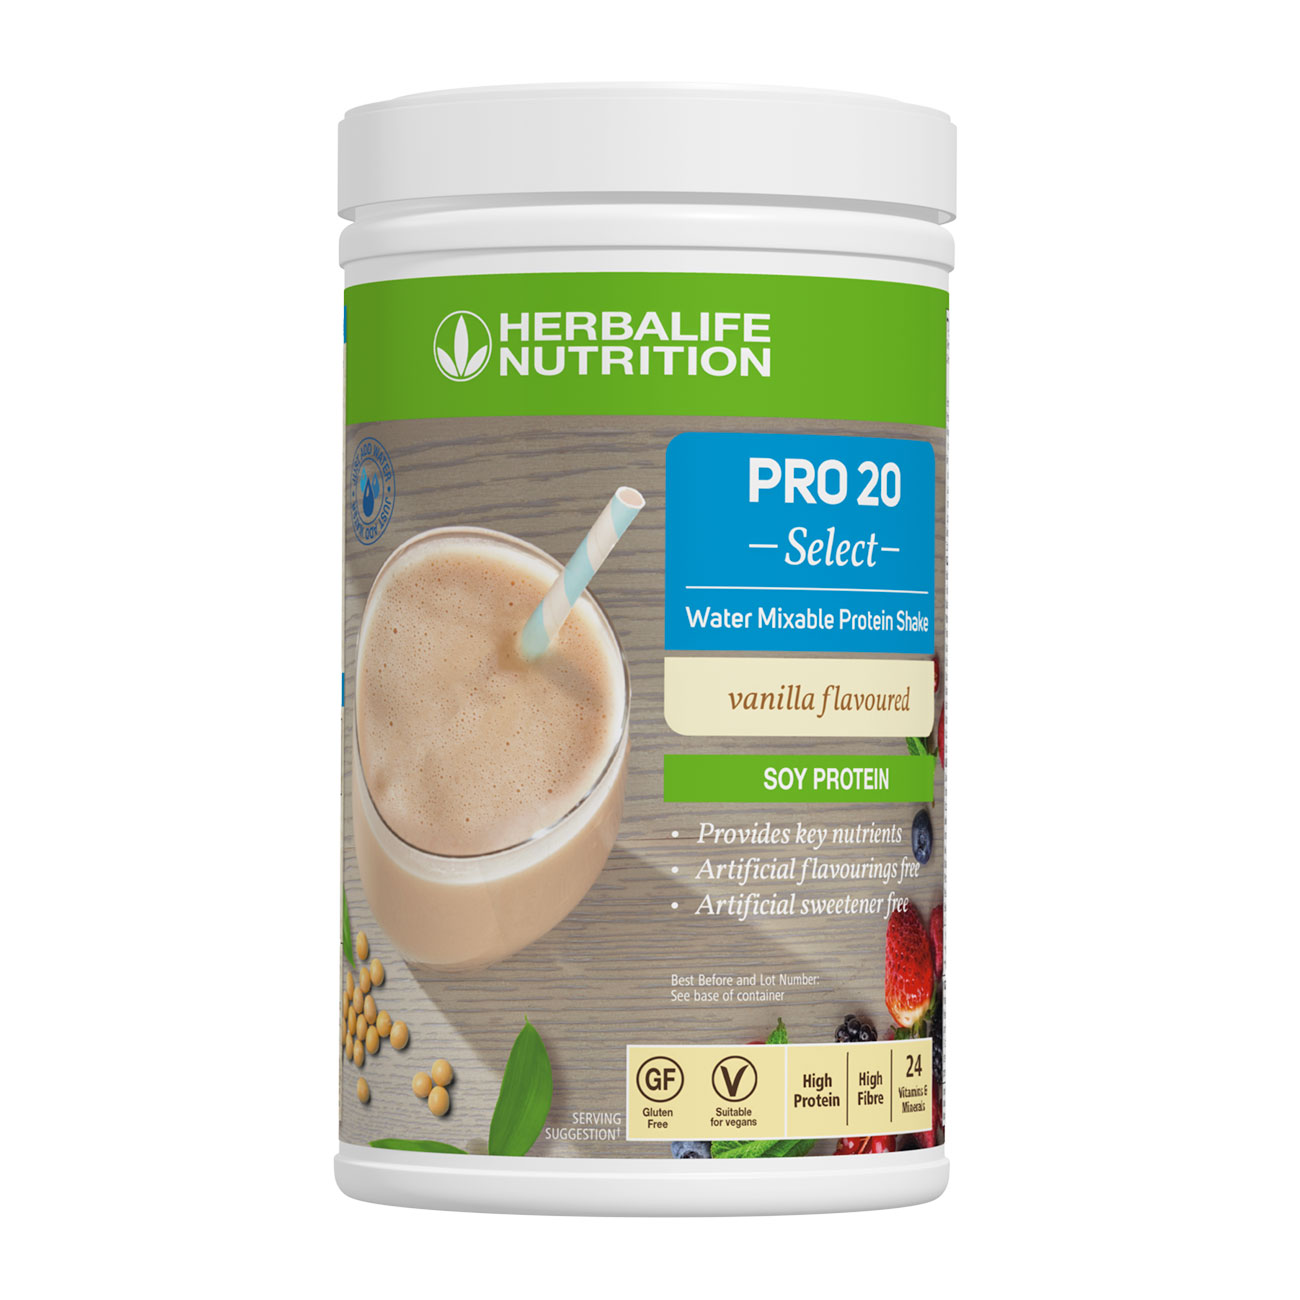 PRO 20 Select Water Mixable Protein Shake Vanilla Flavoured product shot